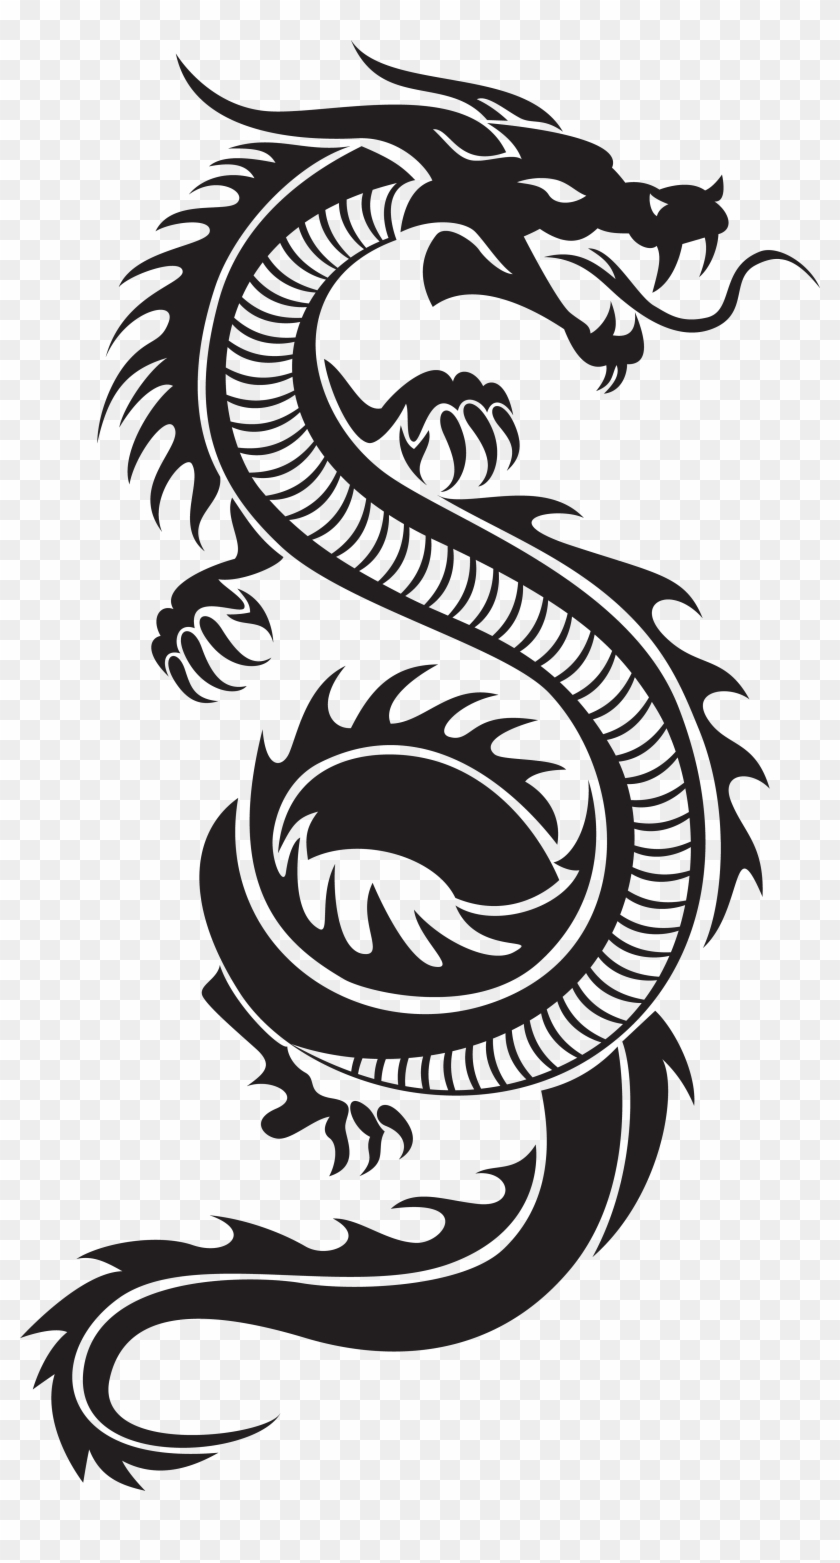 Black Dragon Png Hd - Chinese Dragon Silhouette Png Clip Art - Chinese Dragon Silhouette ...